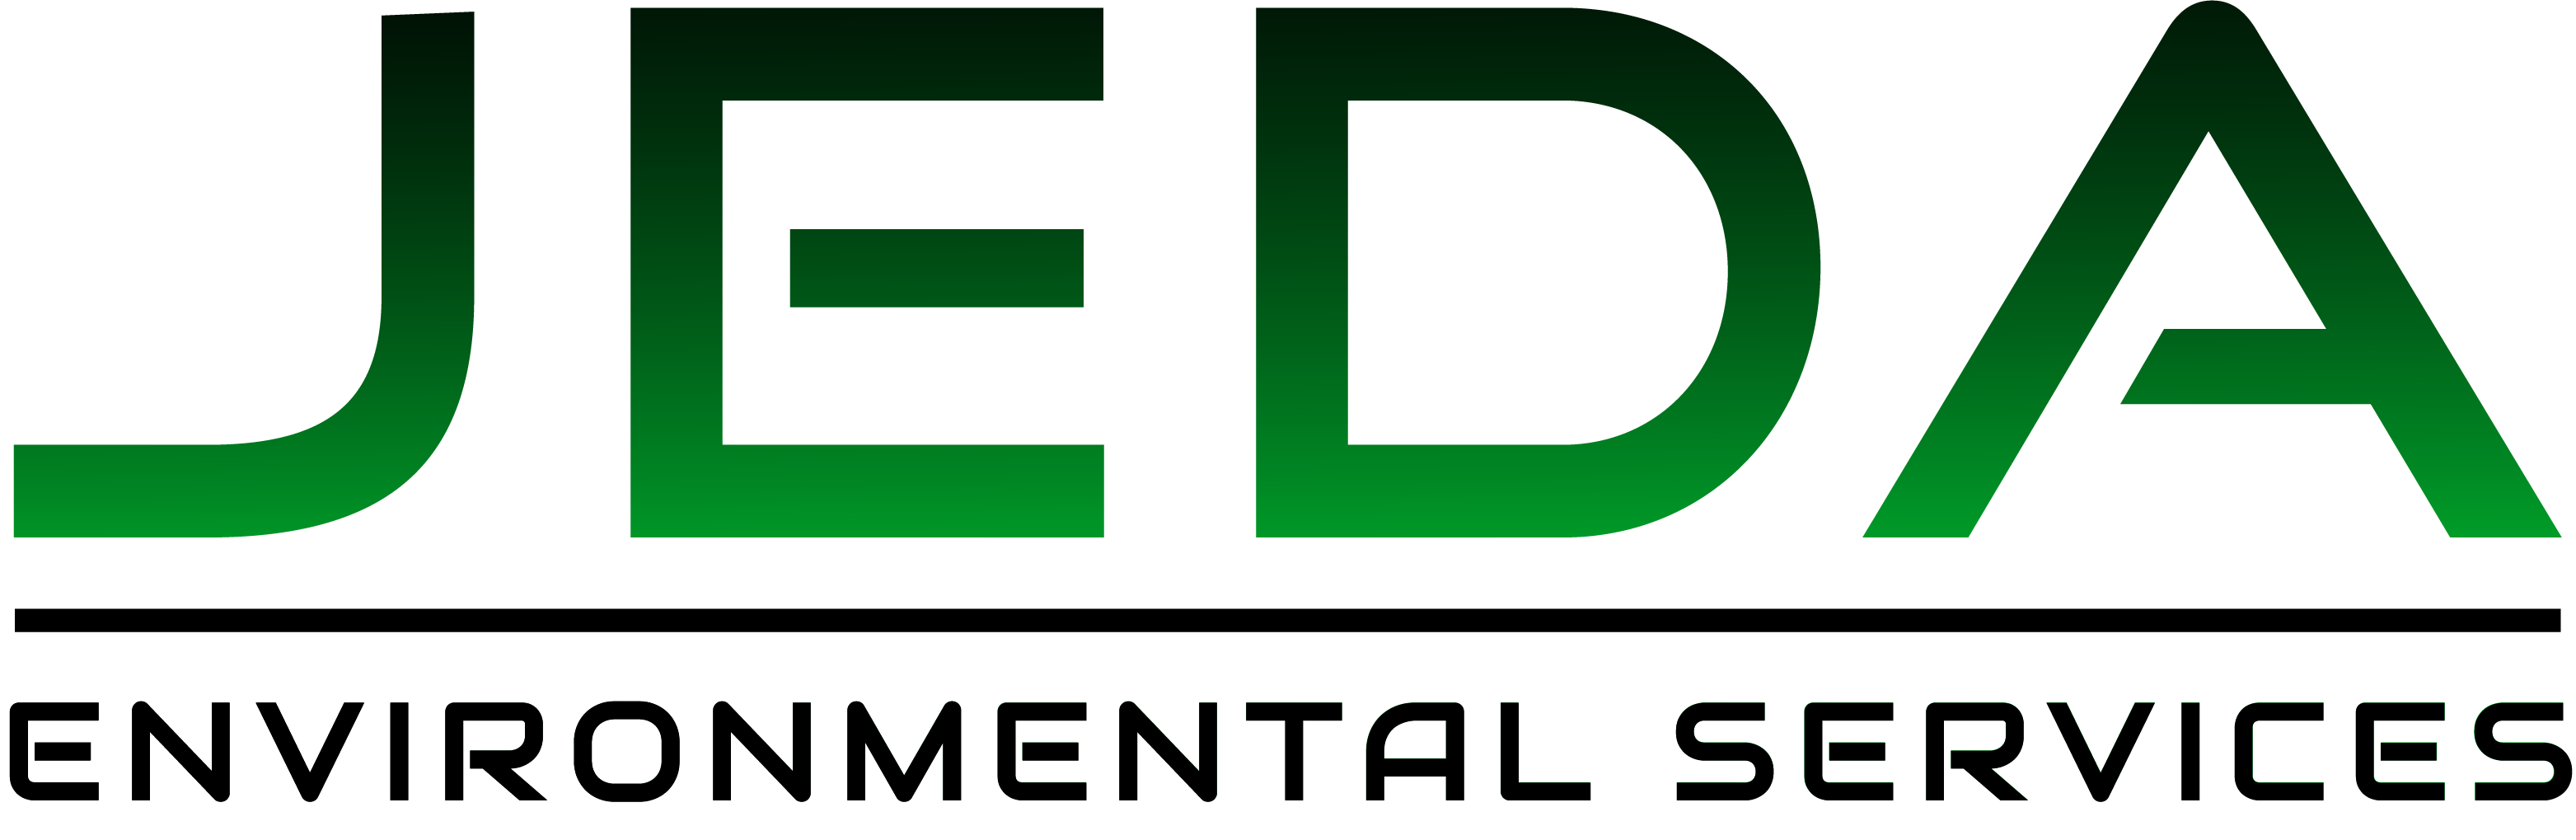 JEDA Environmental Services